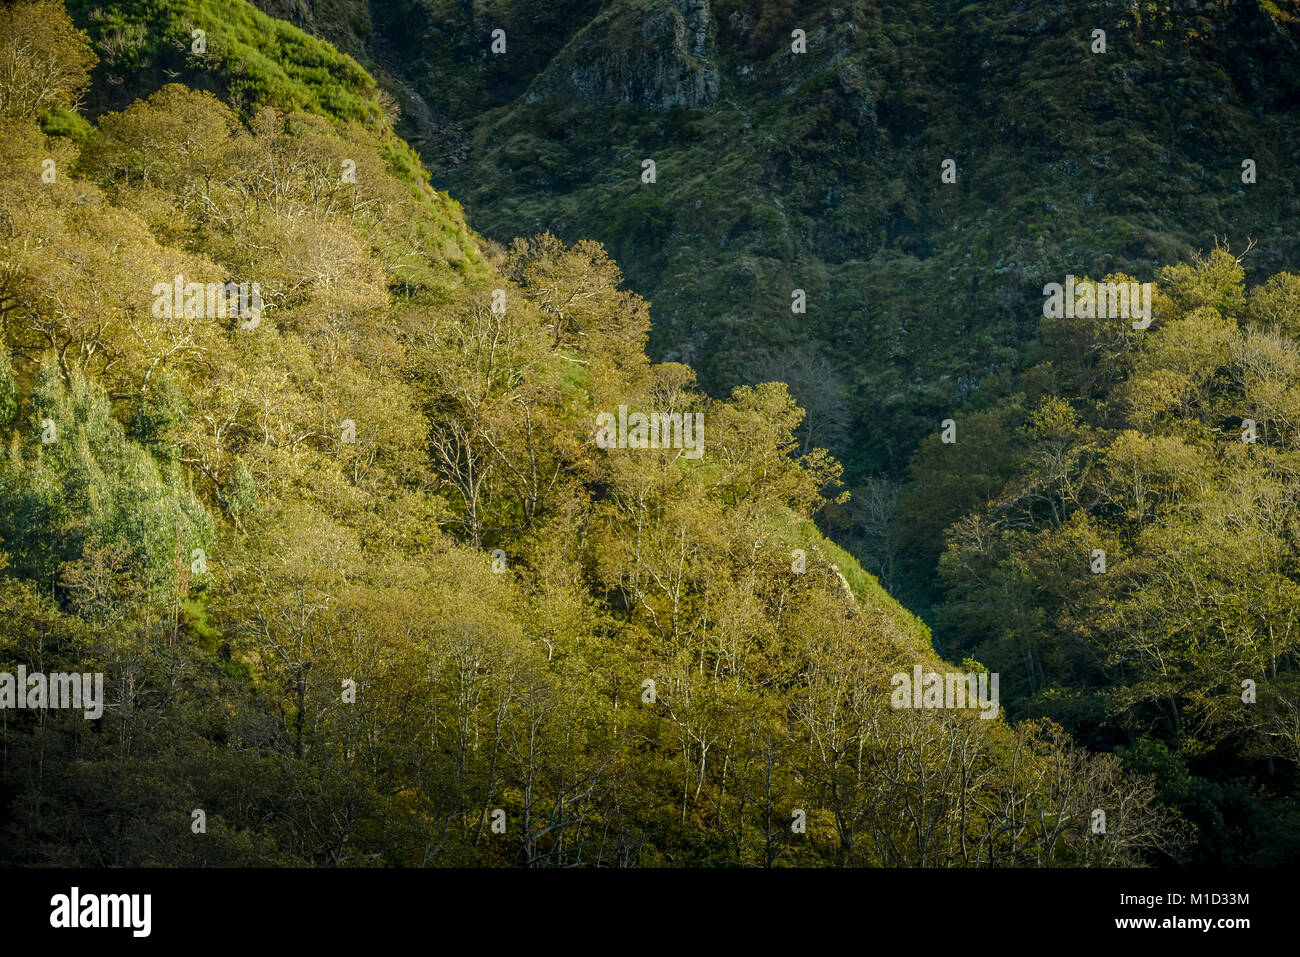 Forest, Central Mountains, Madeira, Portugal, Wald, Zentralgebirge - Stock Image